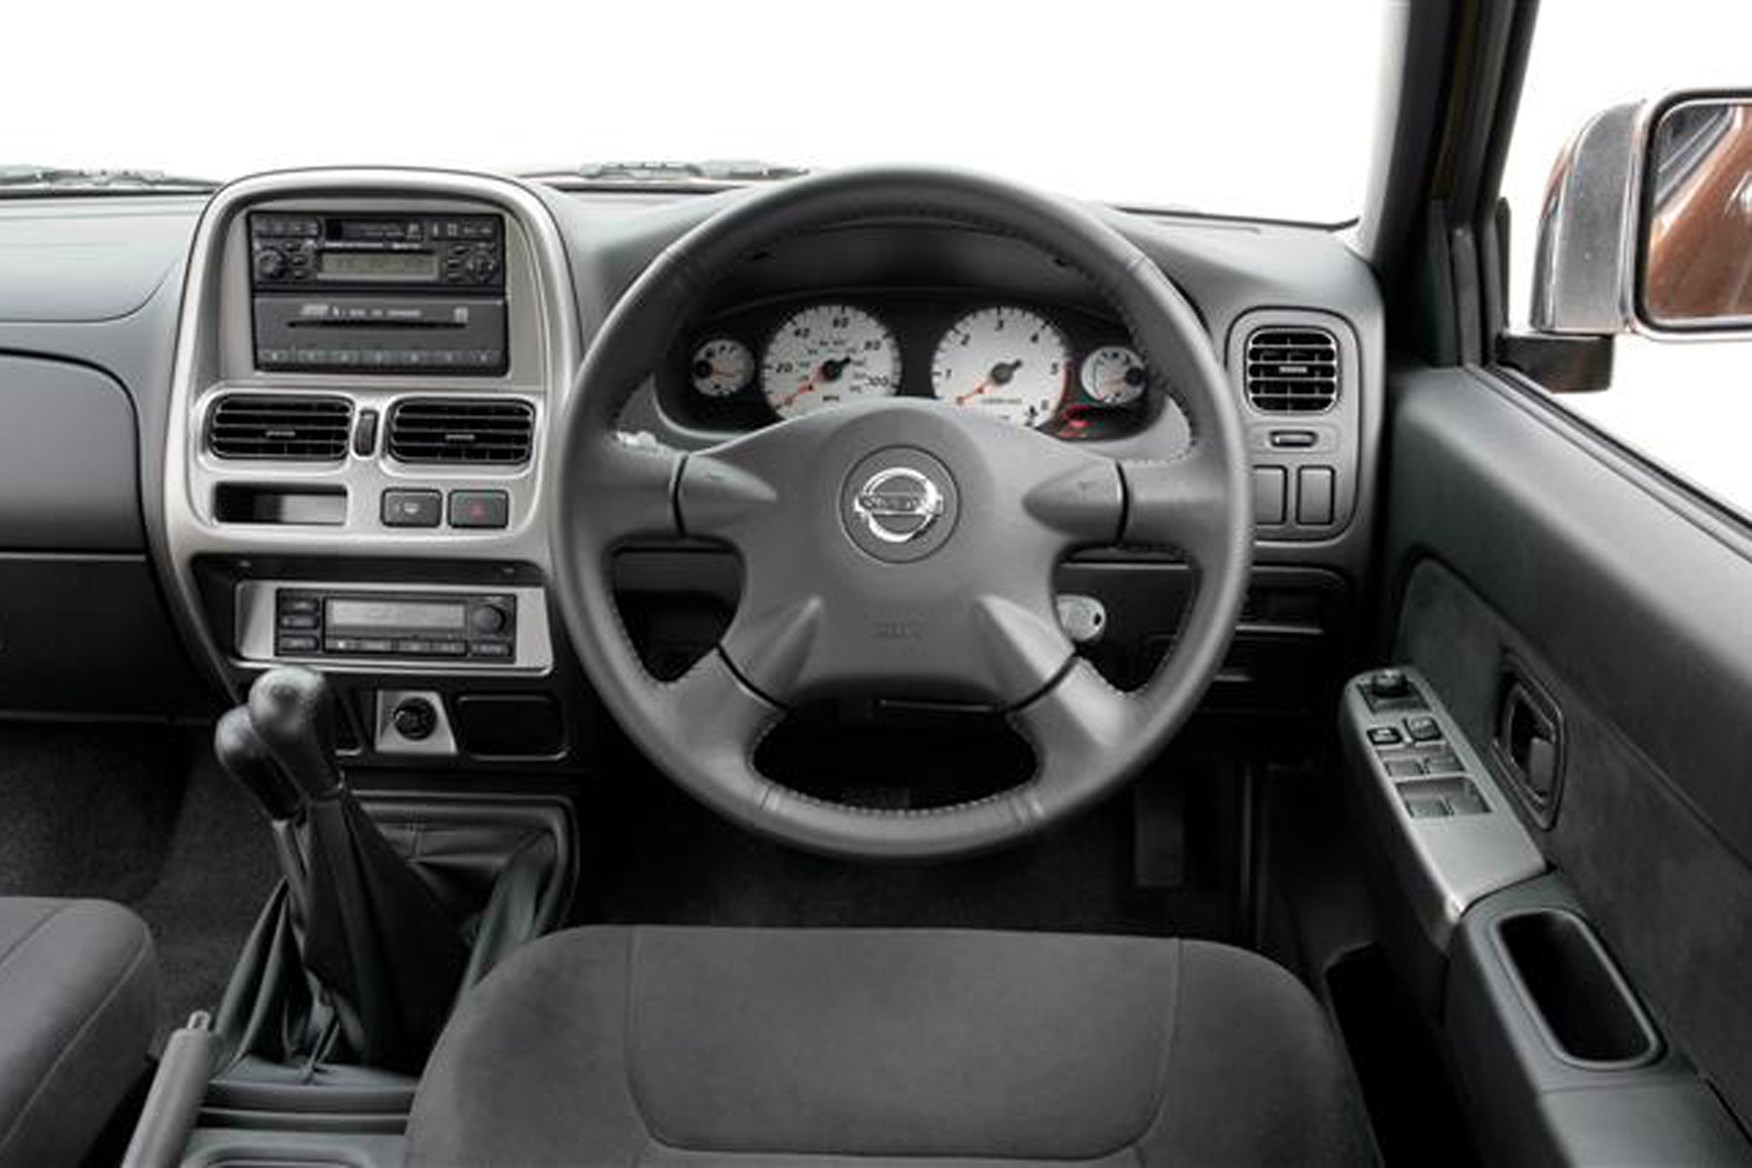 Nissan Navara 2001-2005 review on Parkers Vans - in the driver's seat